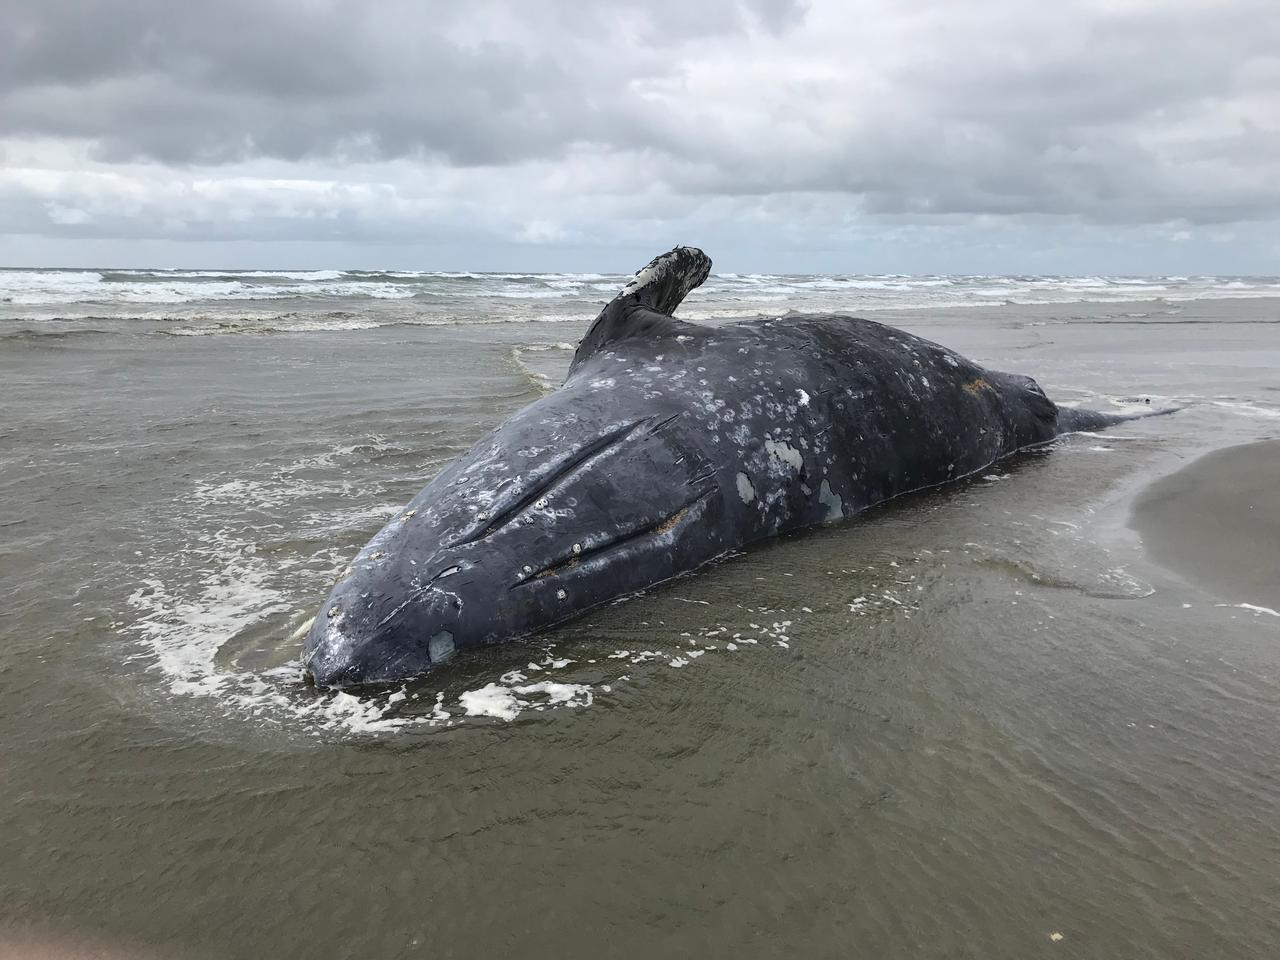 A stranded gray whale